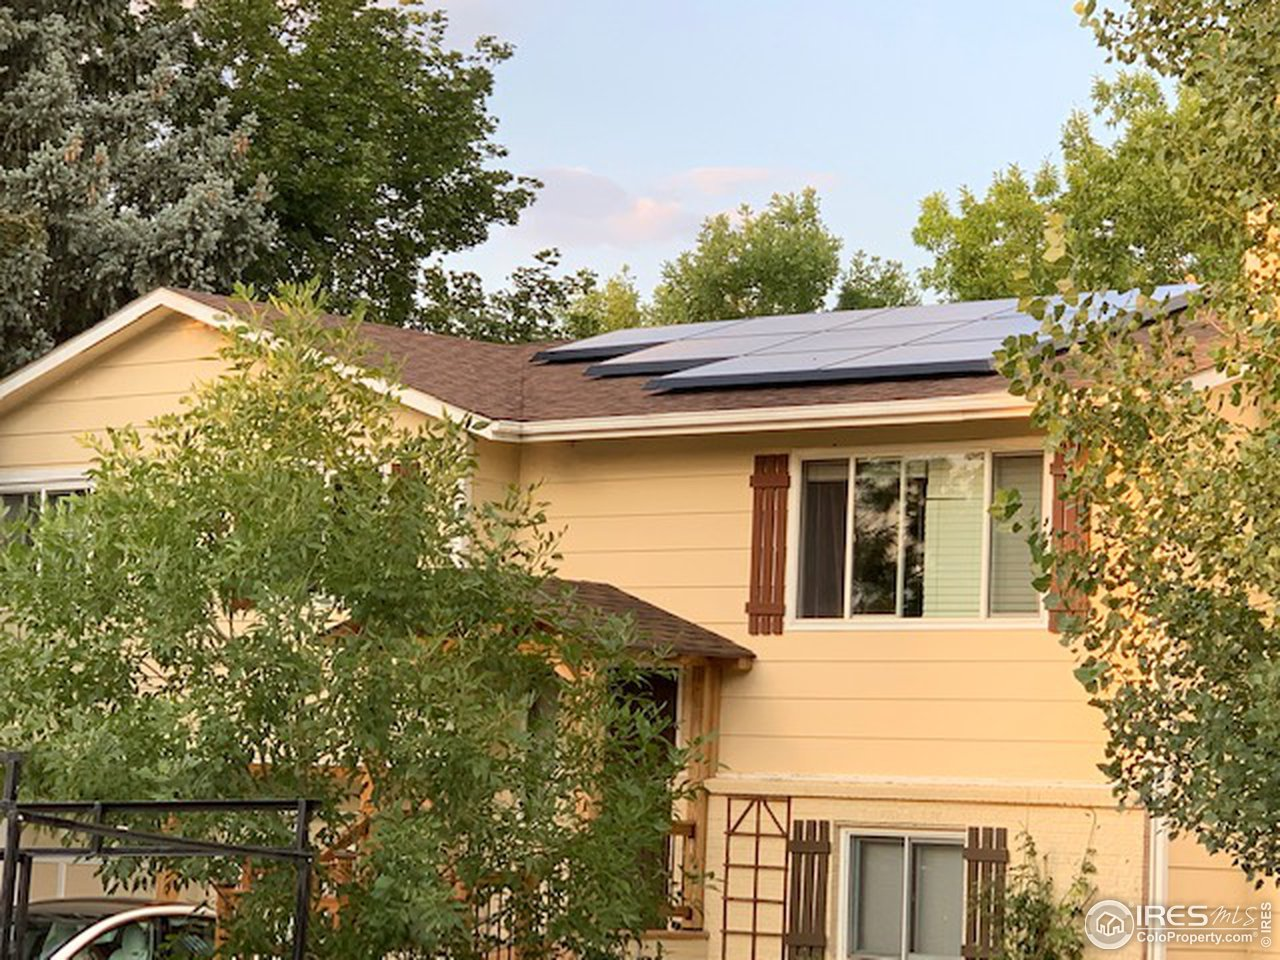 Owned Tesla Solar Panels included